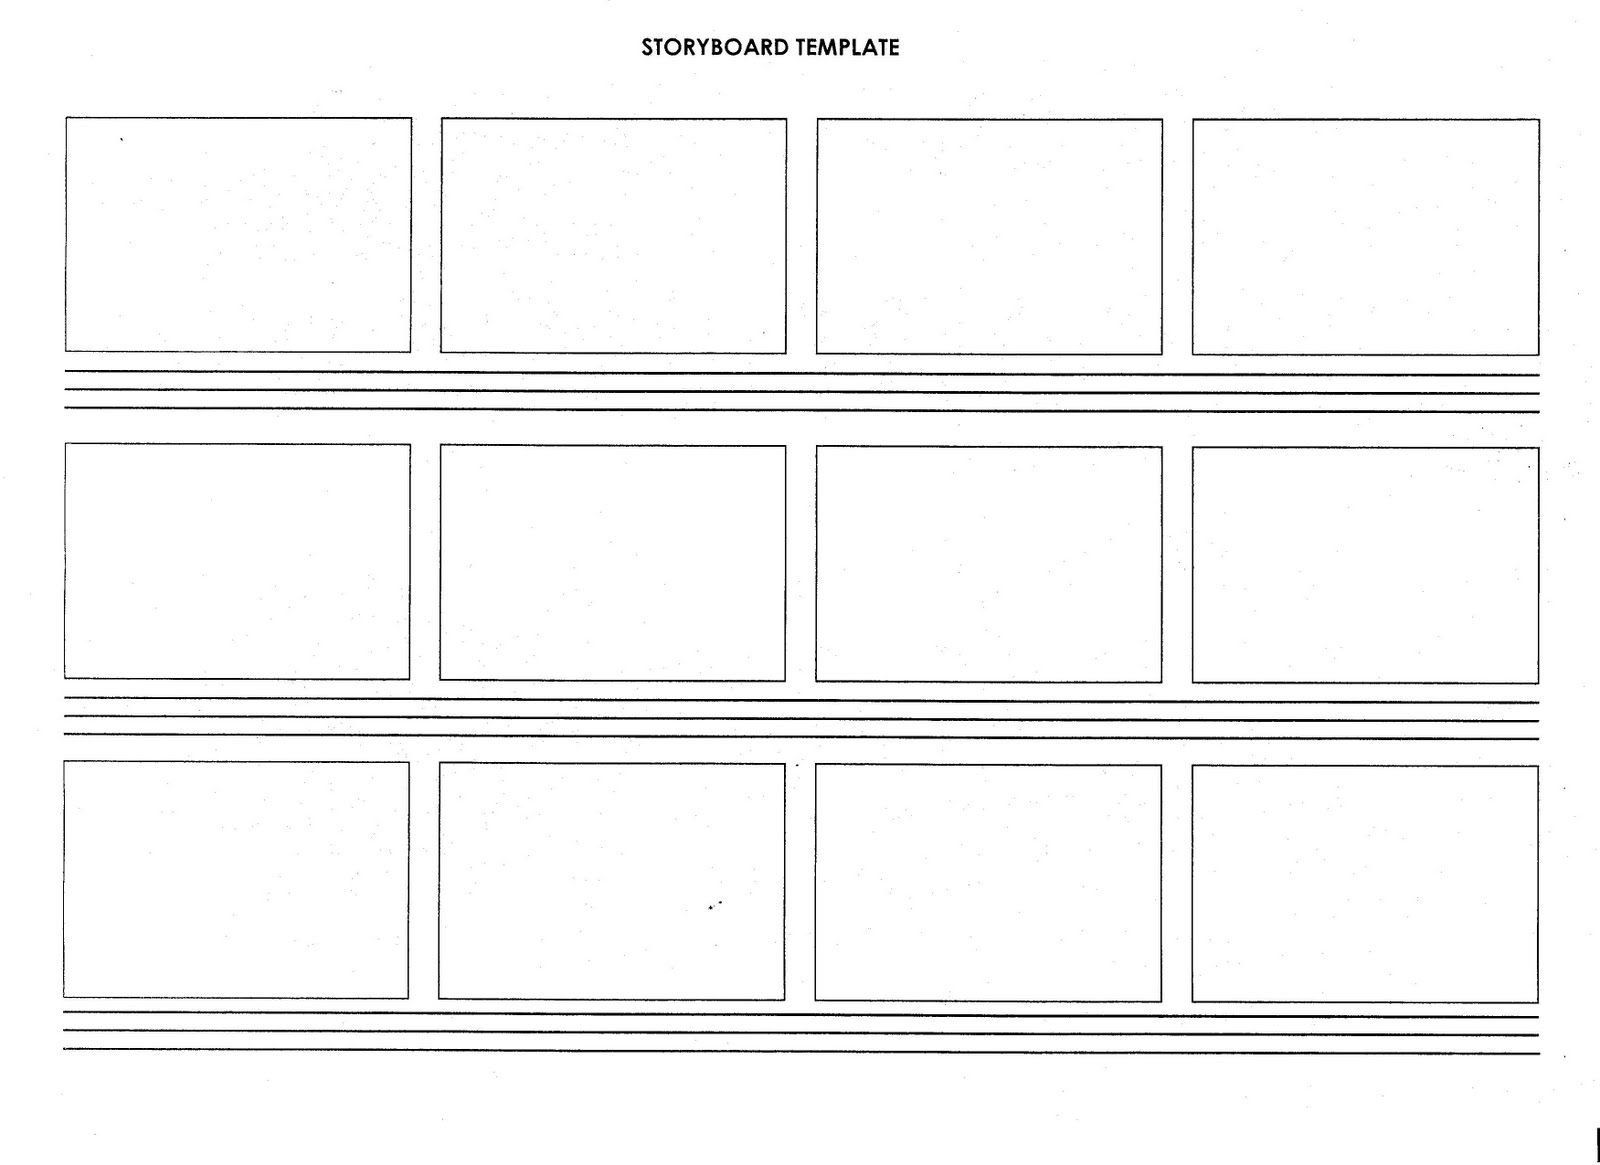 2011 2012 A2 Media Storyboard Template And Script Example